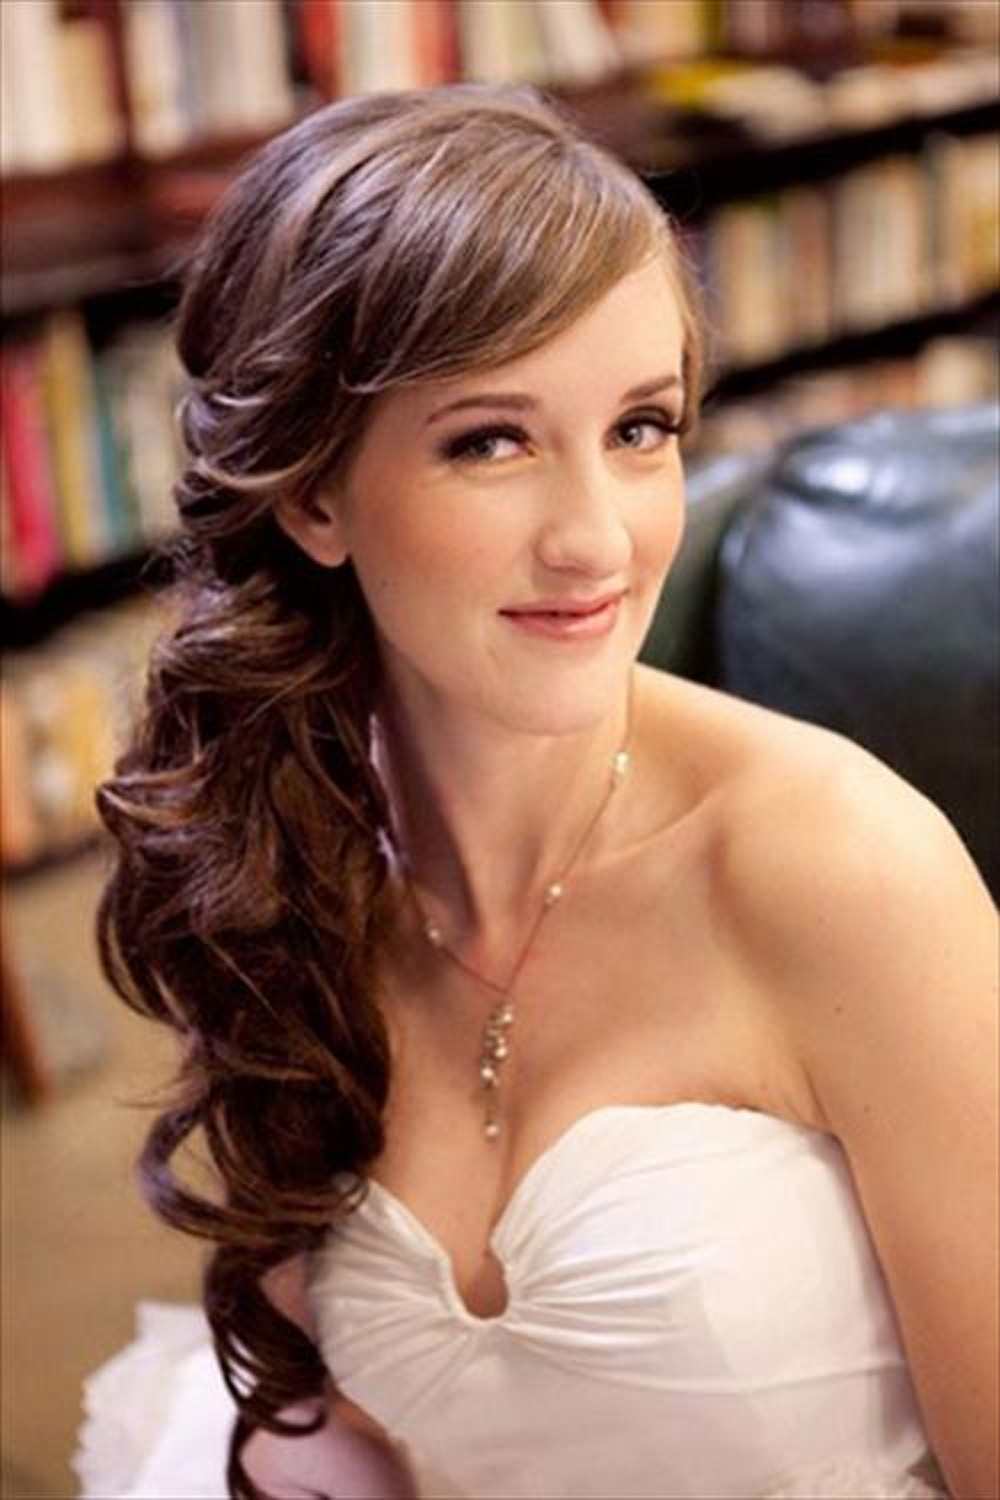 Wedding Hairstyles Ideas Side Ponytail Long Thick Wavy Hair For Inside Popular Wedding Hairstyles For Long Hair With Bangs (View 11 of 15)